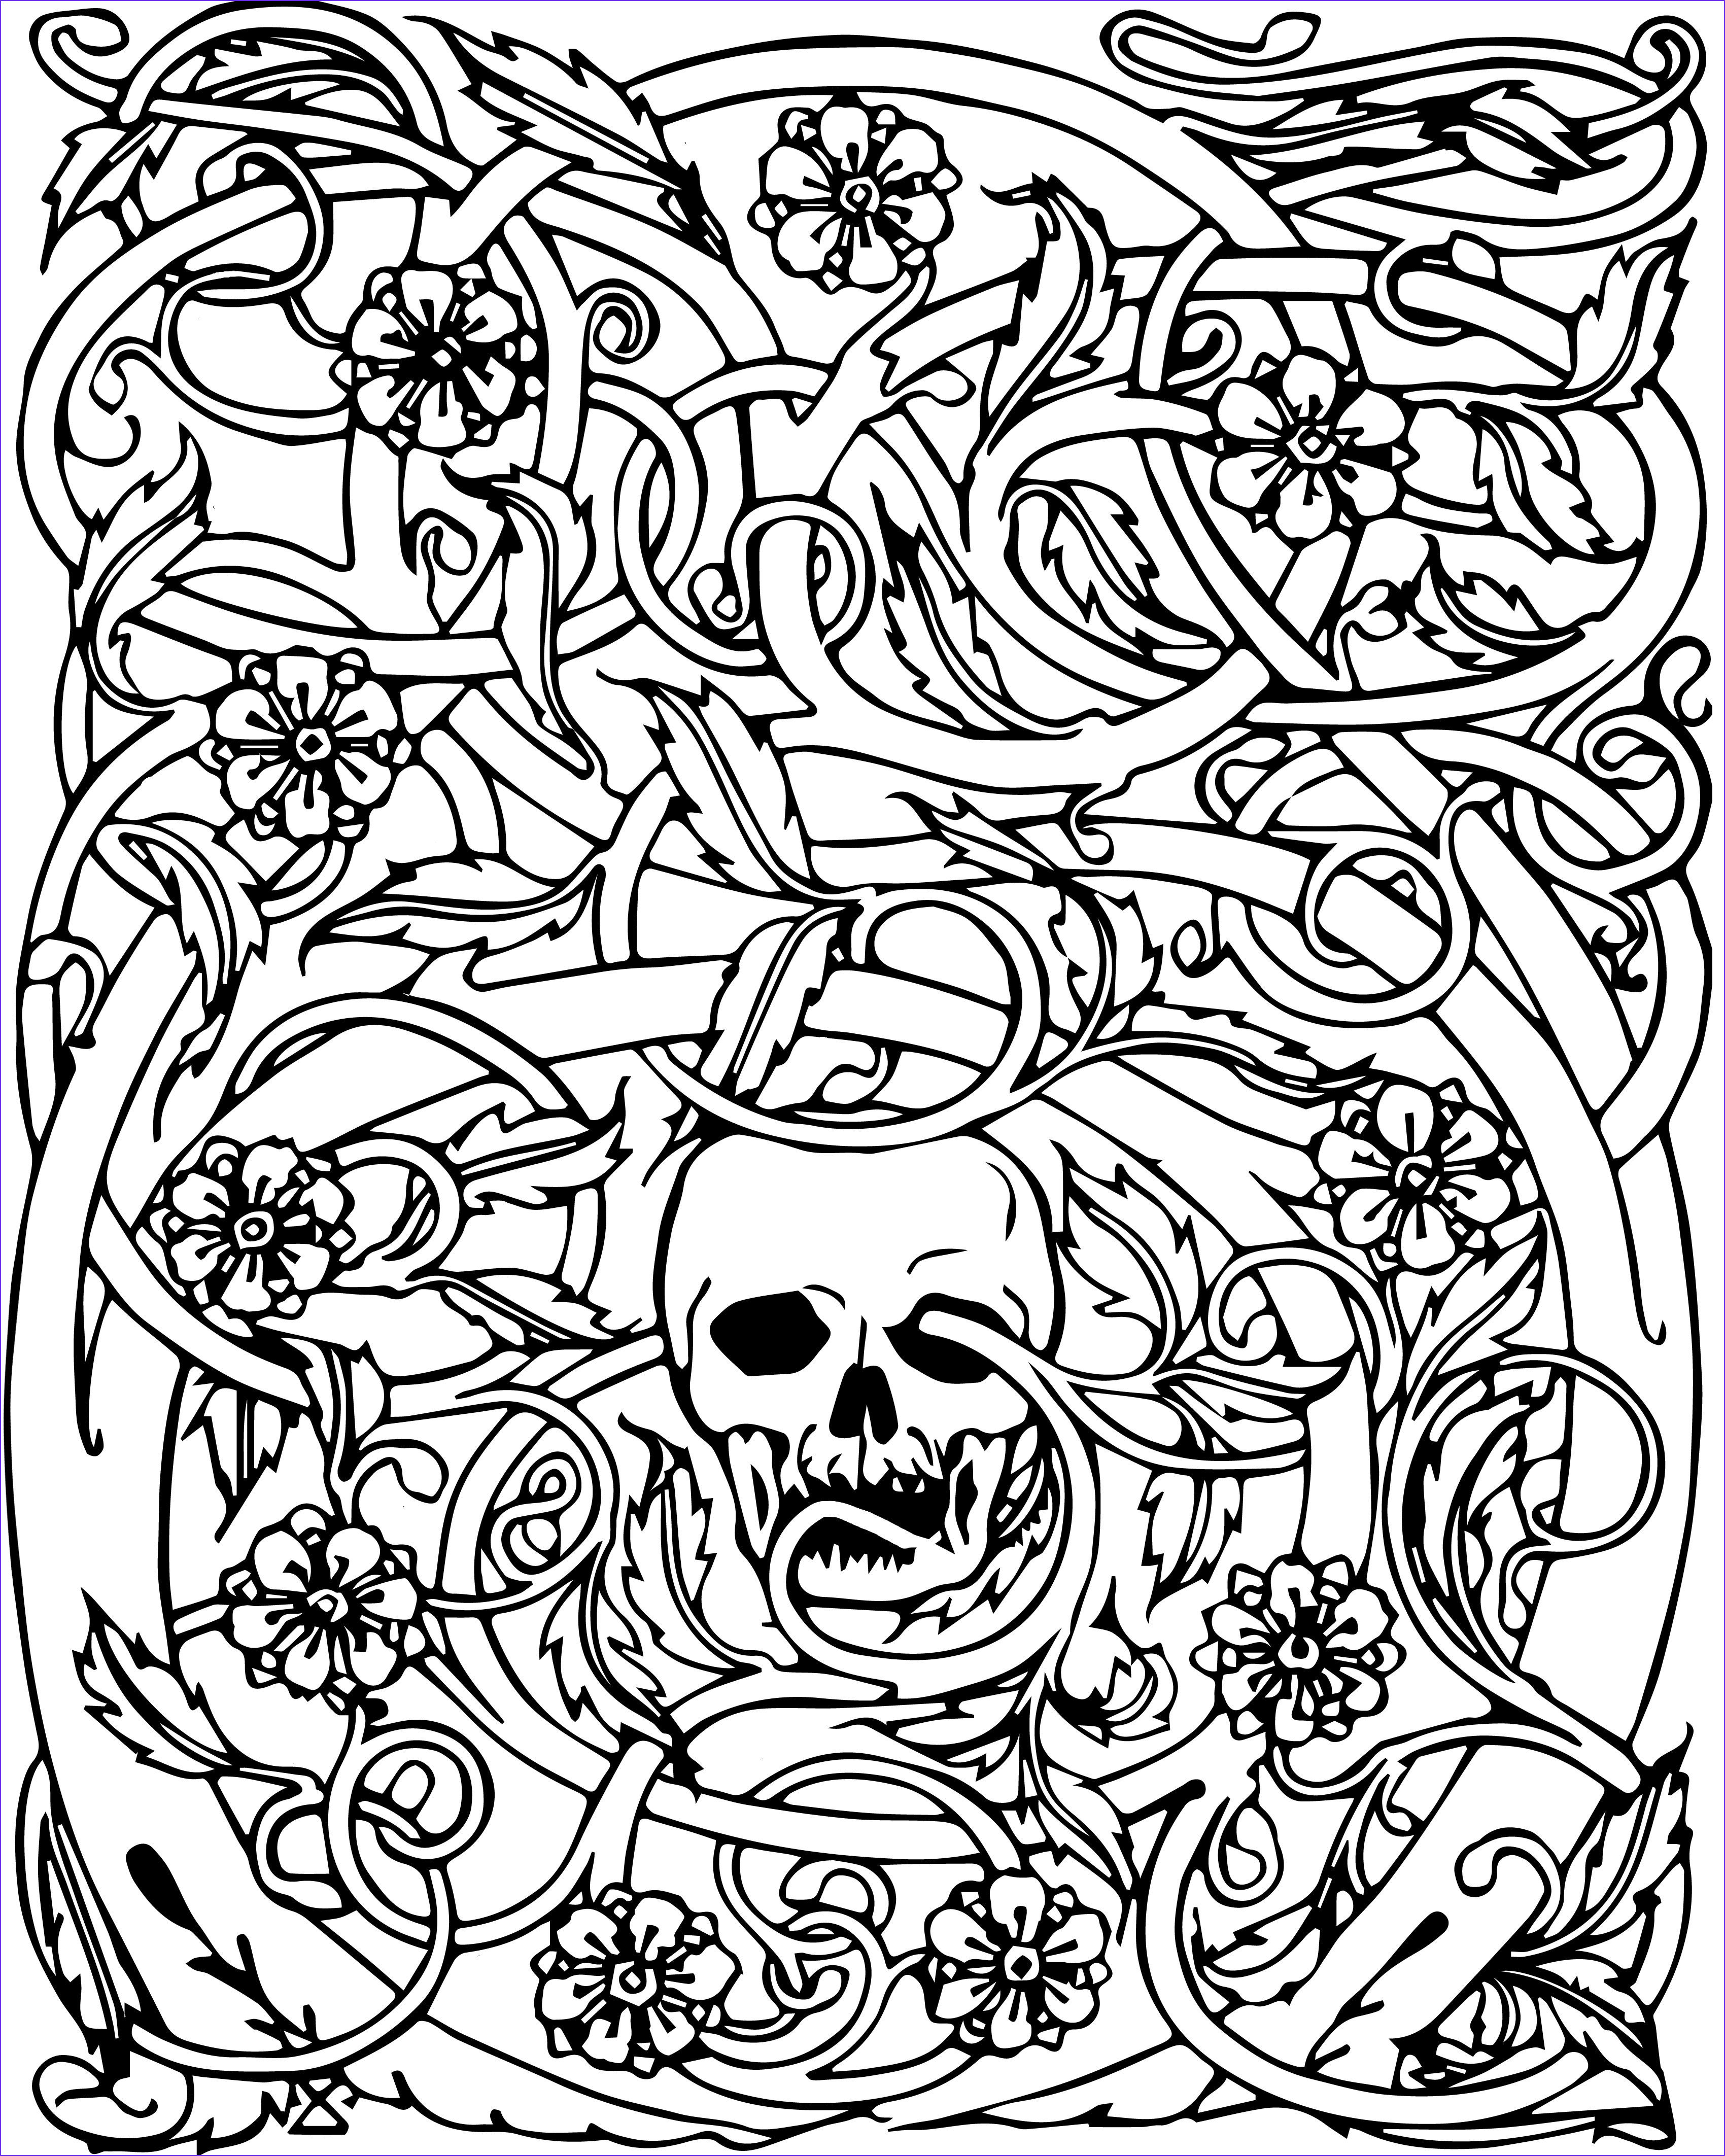 free adult coloring pages pdf Coloring